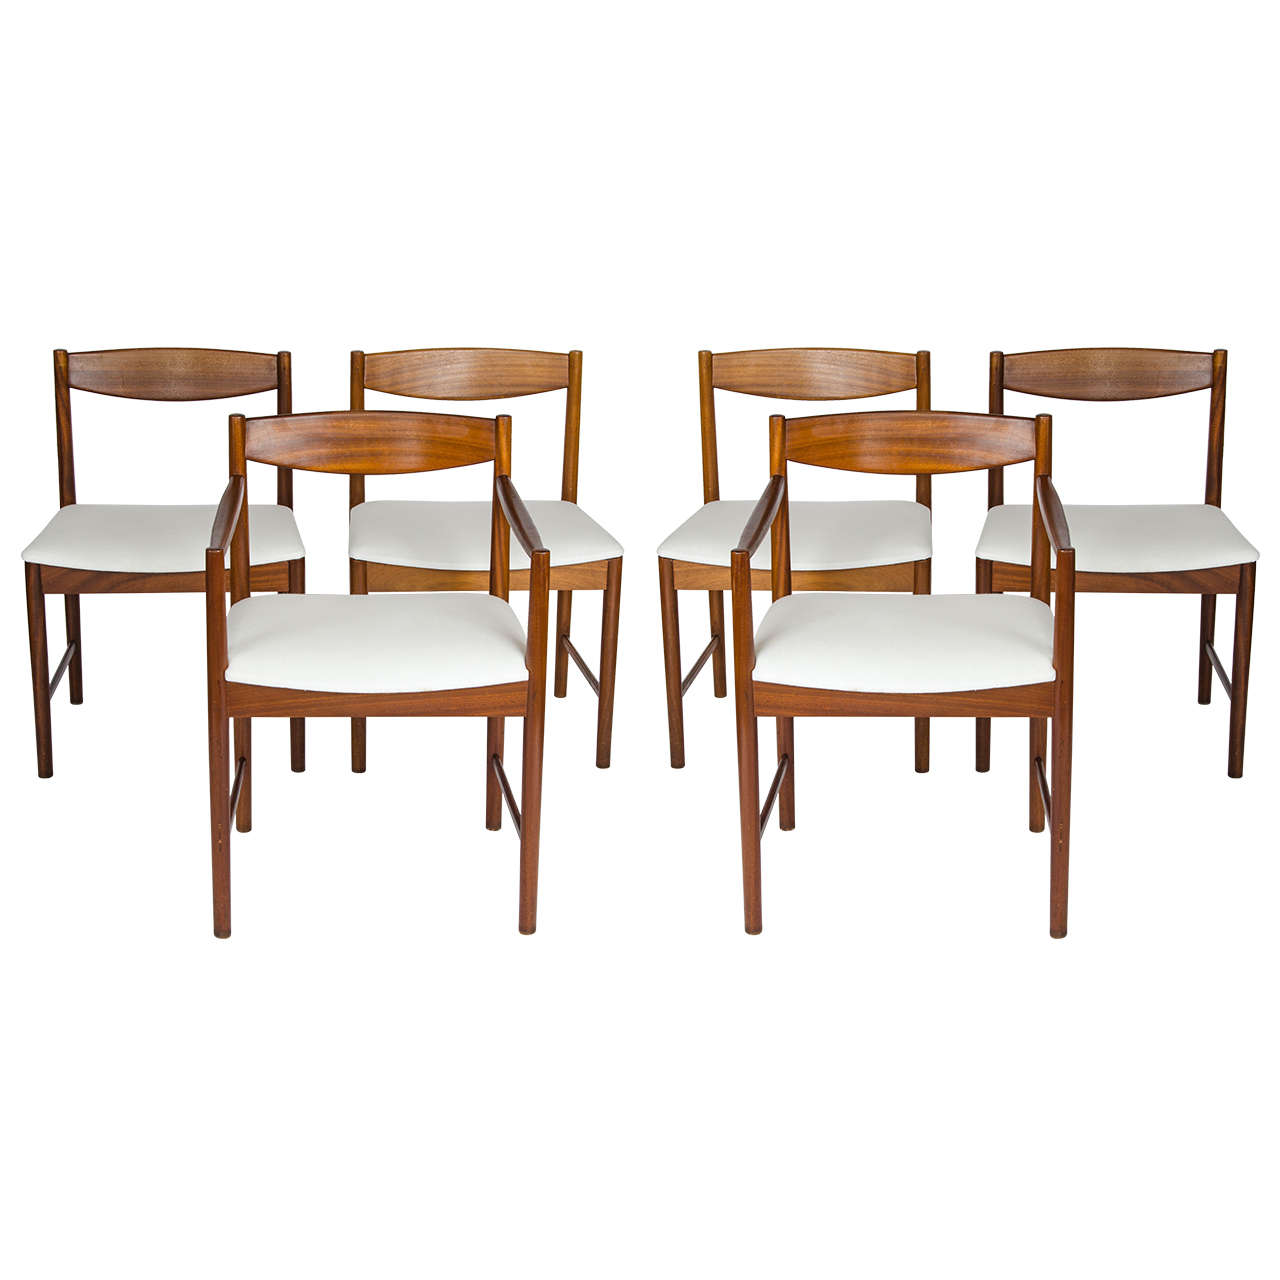 Scottish mcintosh dining table with six chairs at 1stdibs for Dining table and six chairs